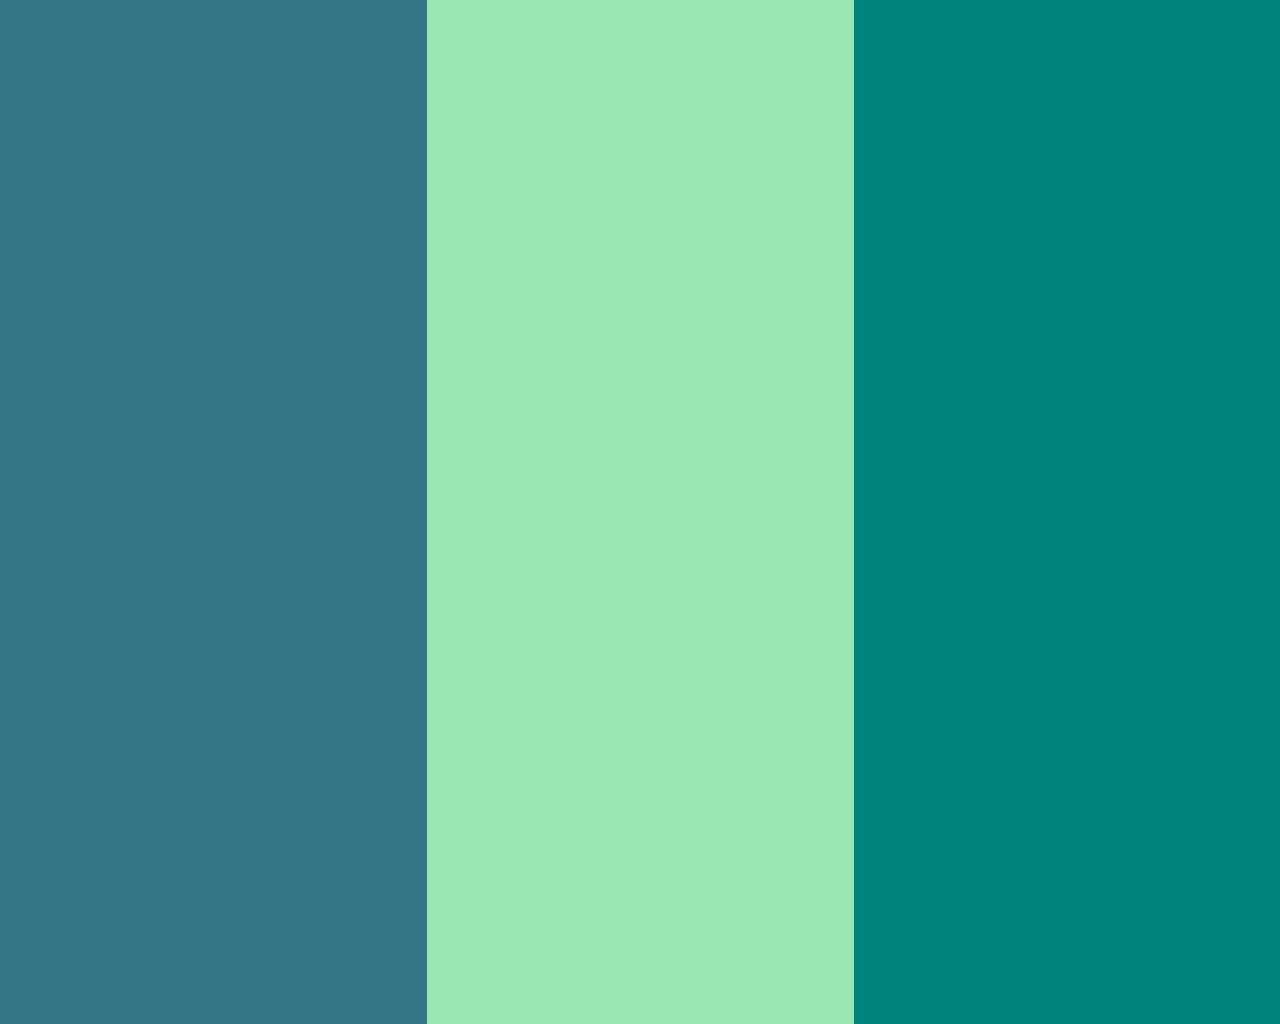 1280x1024 Teal Blue, Teal Deer and Teal Green Three Color Background